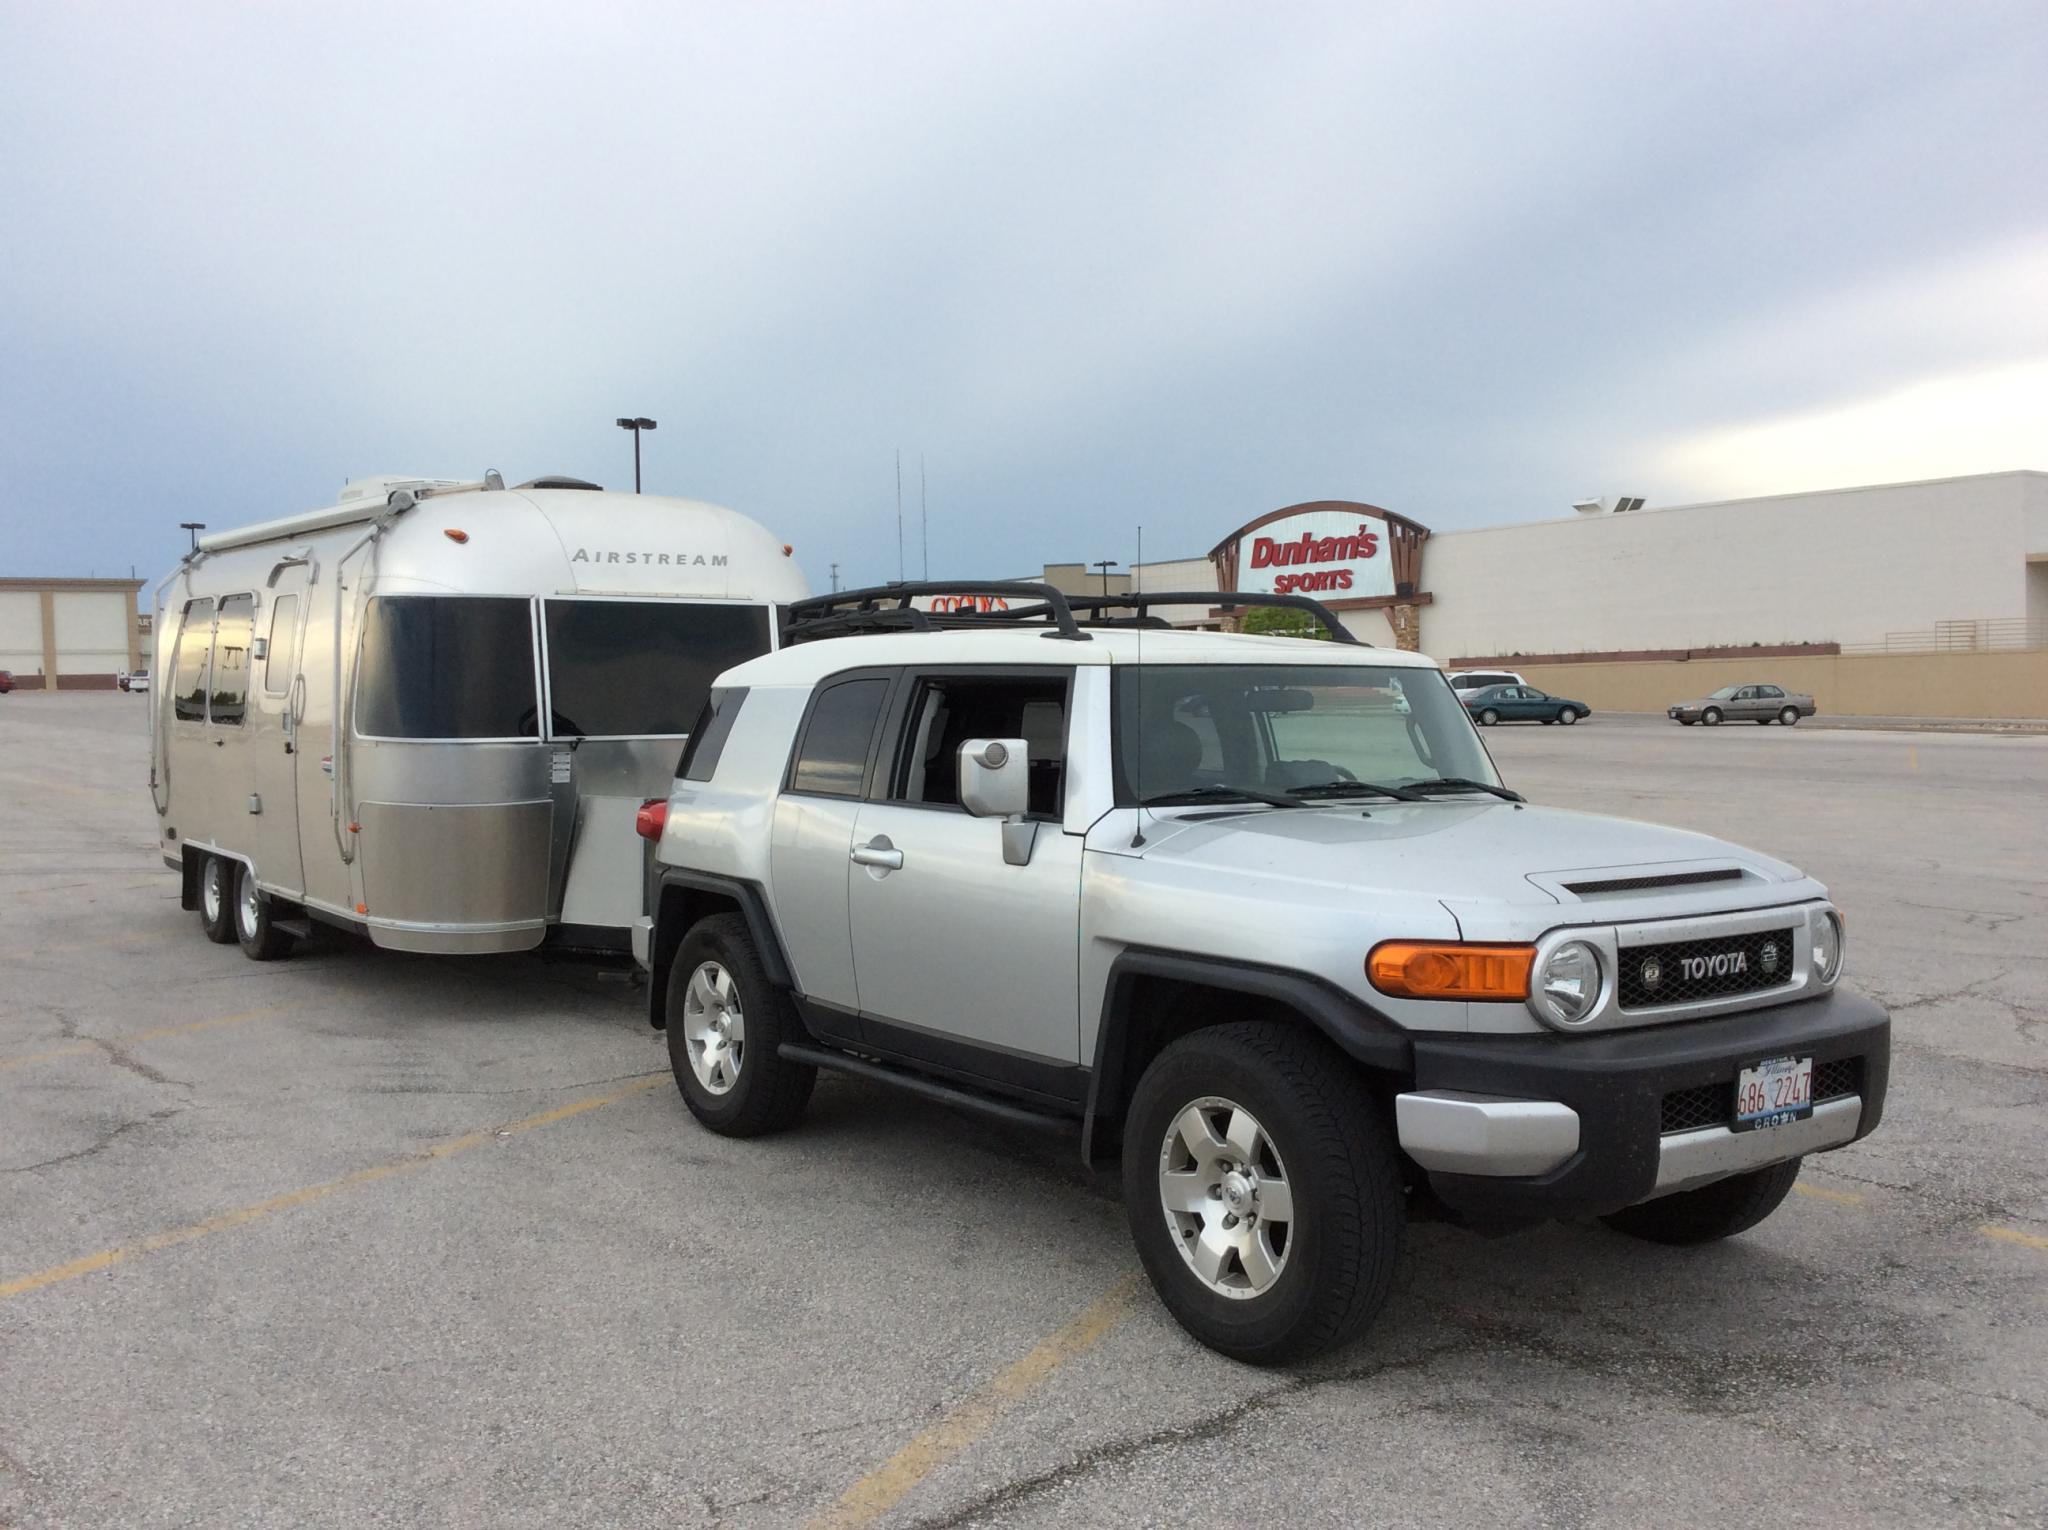 Towing Capacity Page 2 Toyota Fj Cruiser Forum